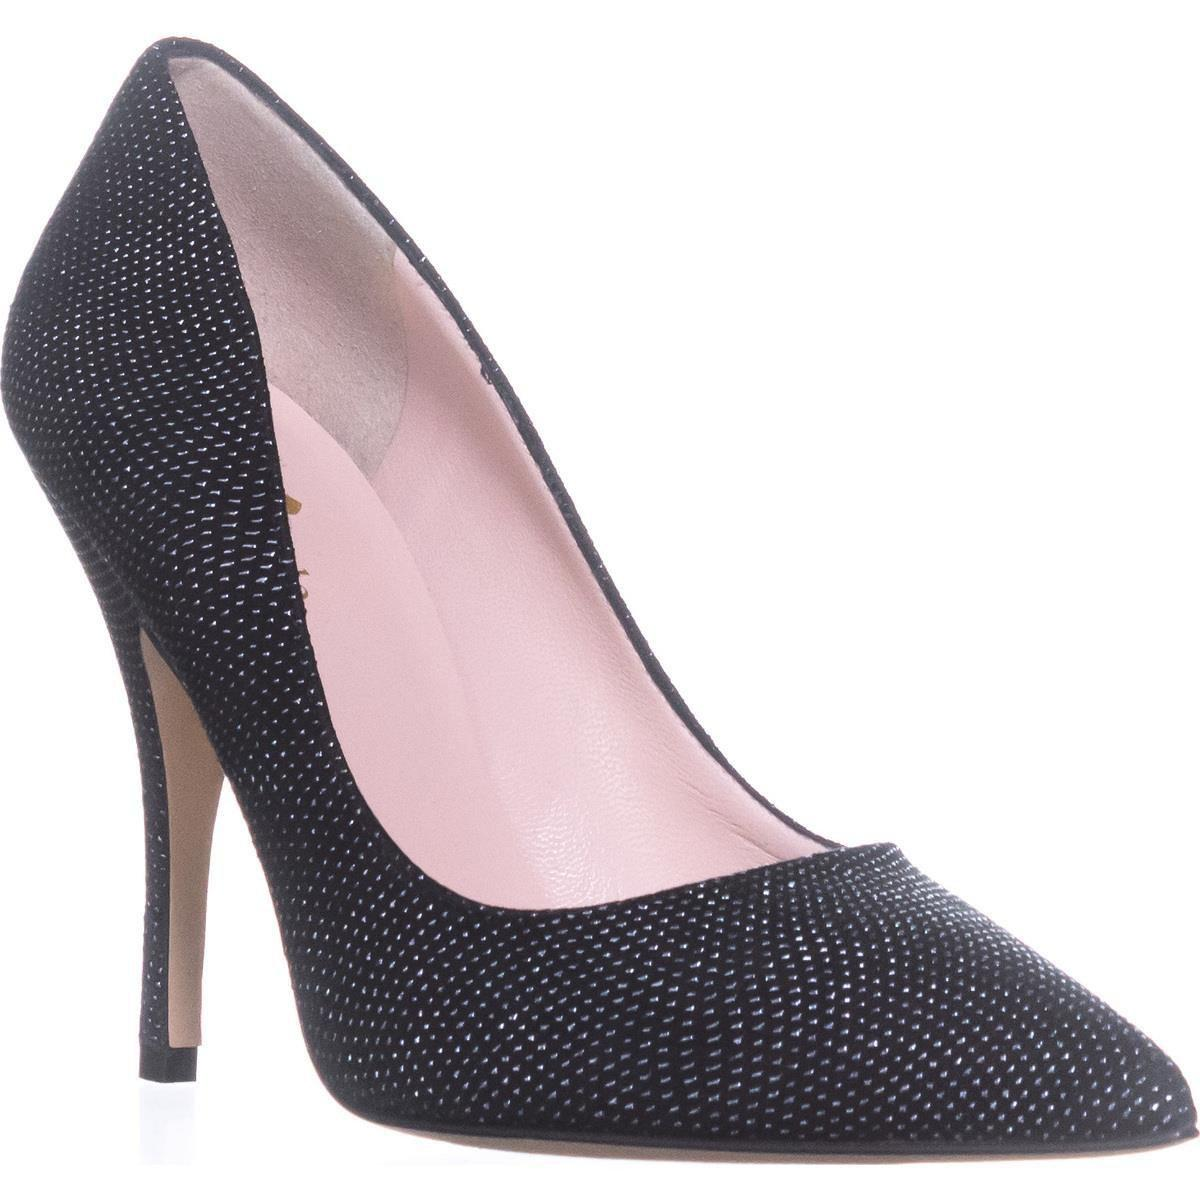 d32a532f51ec Lyst - Kate Spade Kate Spade Licorice Pointed-toe Dress Pumps in Black